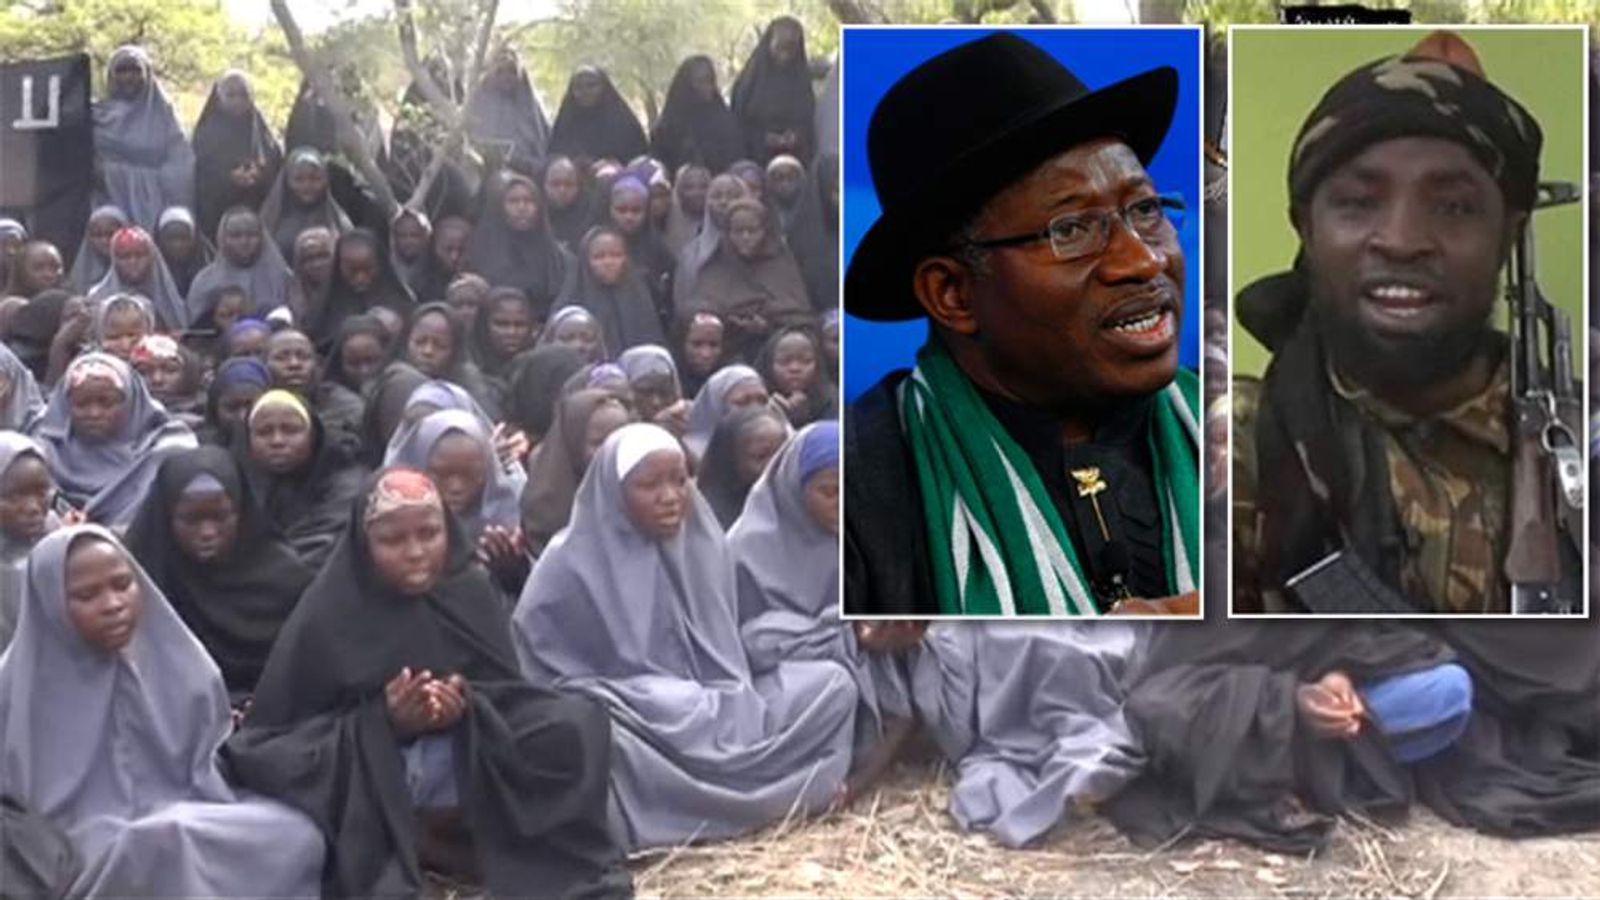 The kidnapped girls, Goodluck Jonathan and Boko Haram's Abubakar Shekau